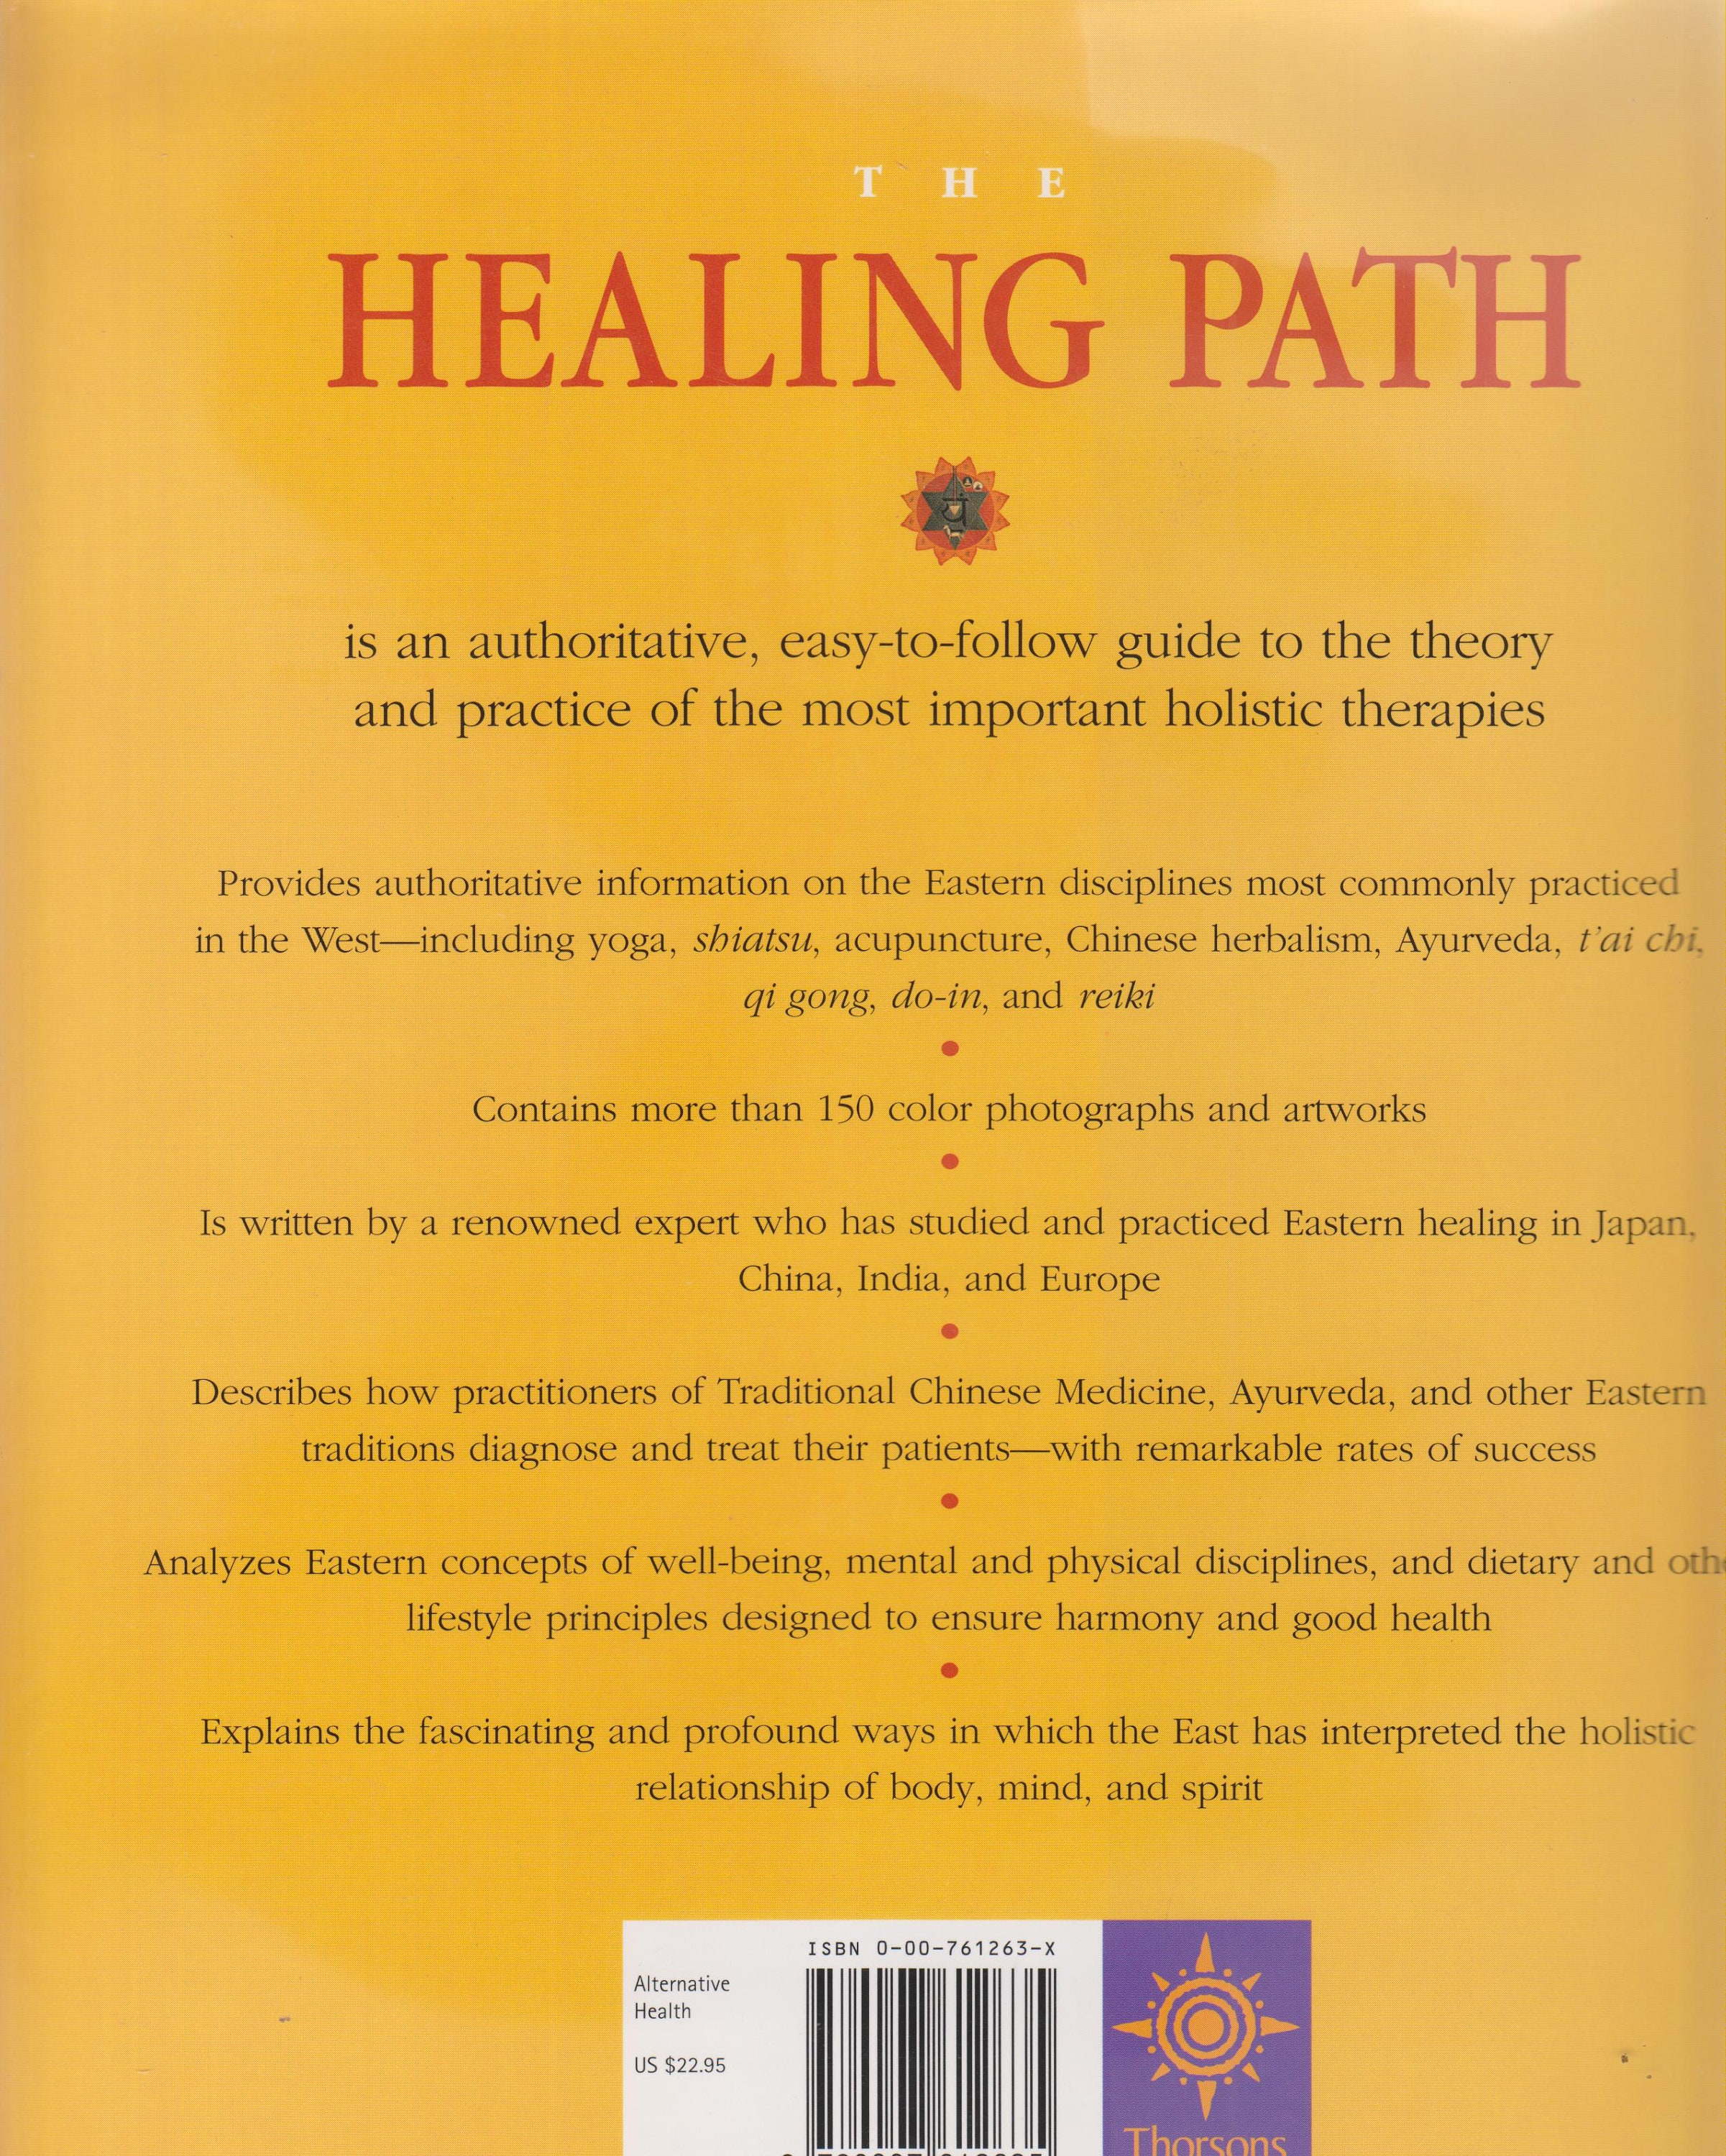 The Healing Path - The practical guide to the holistic